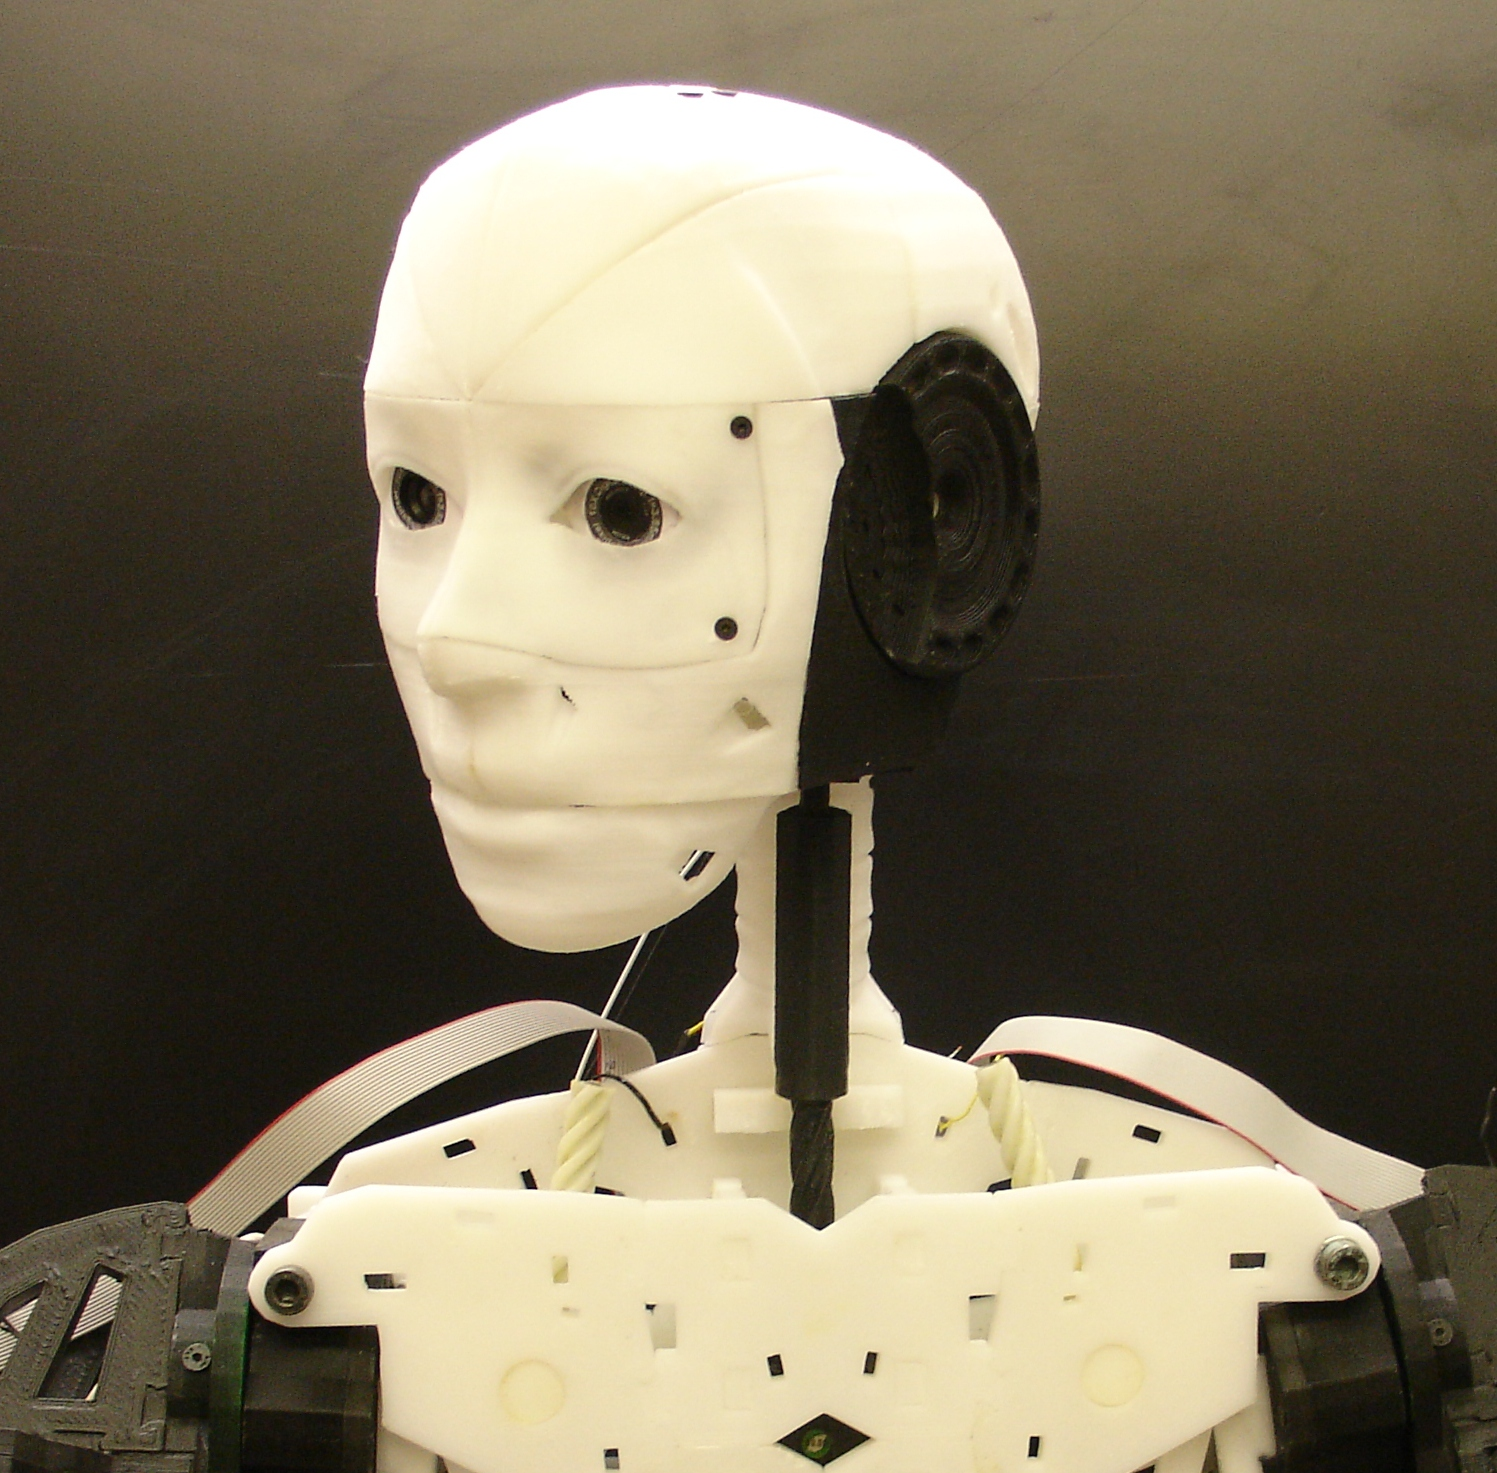 Gael Langevin's open source, 3D-printed InMoov robot will be our guest on November 13th.